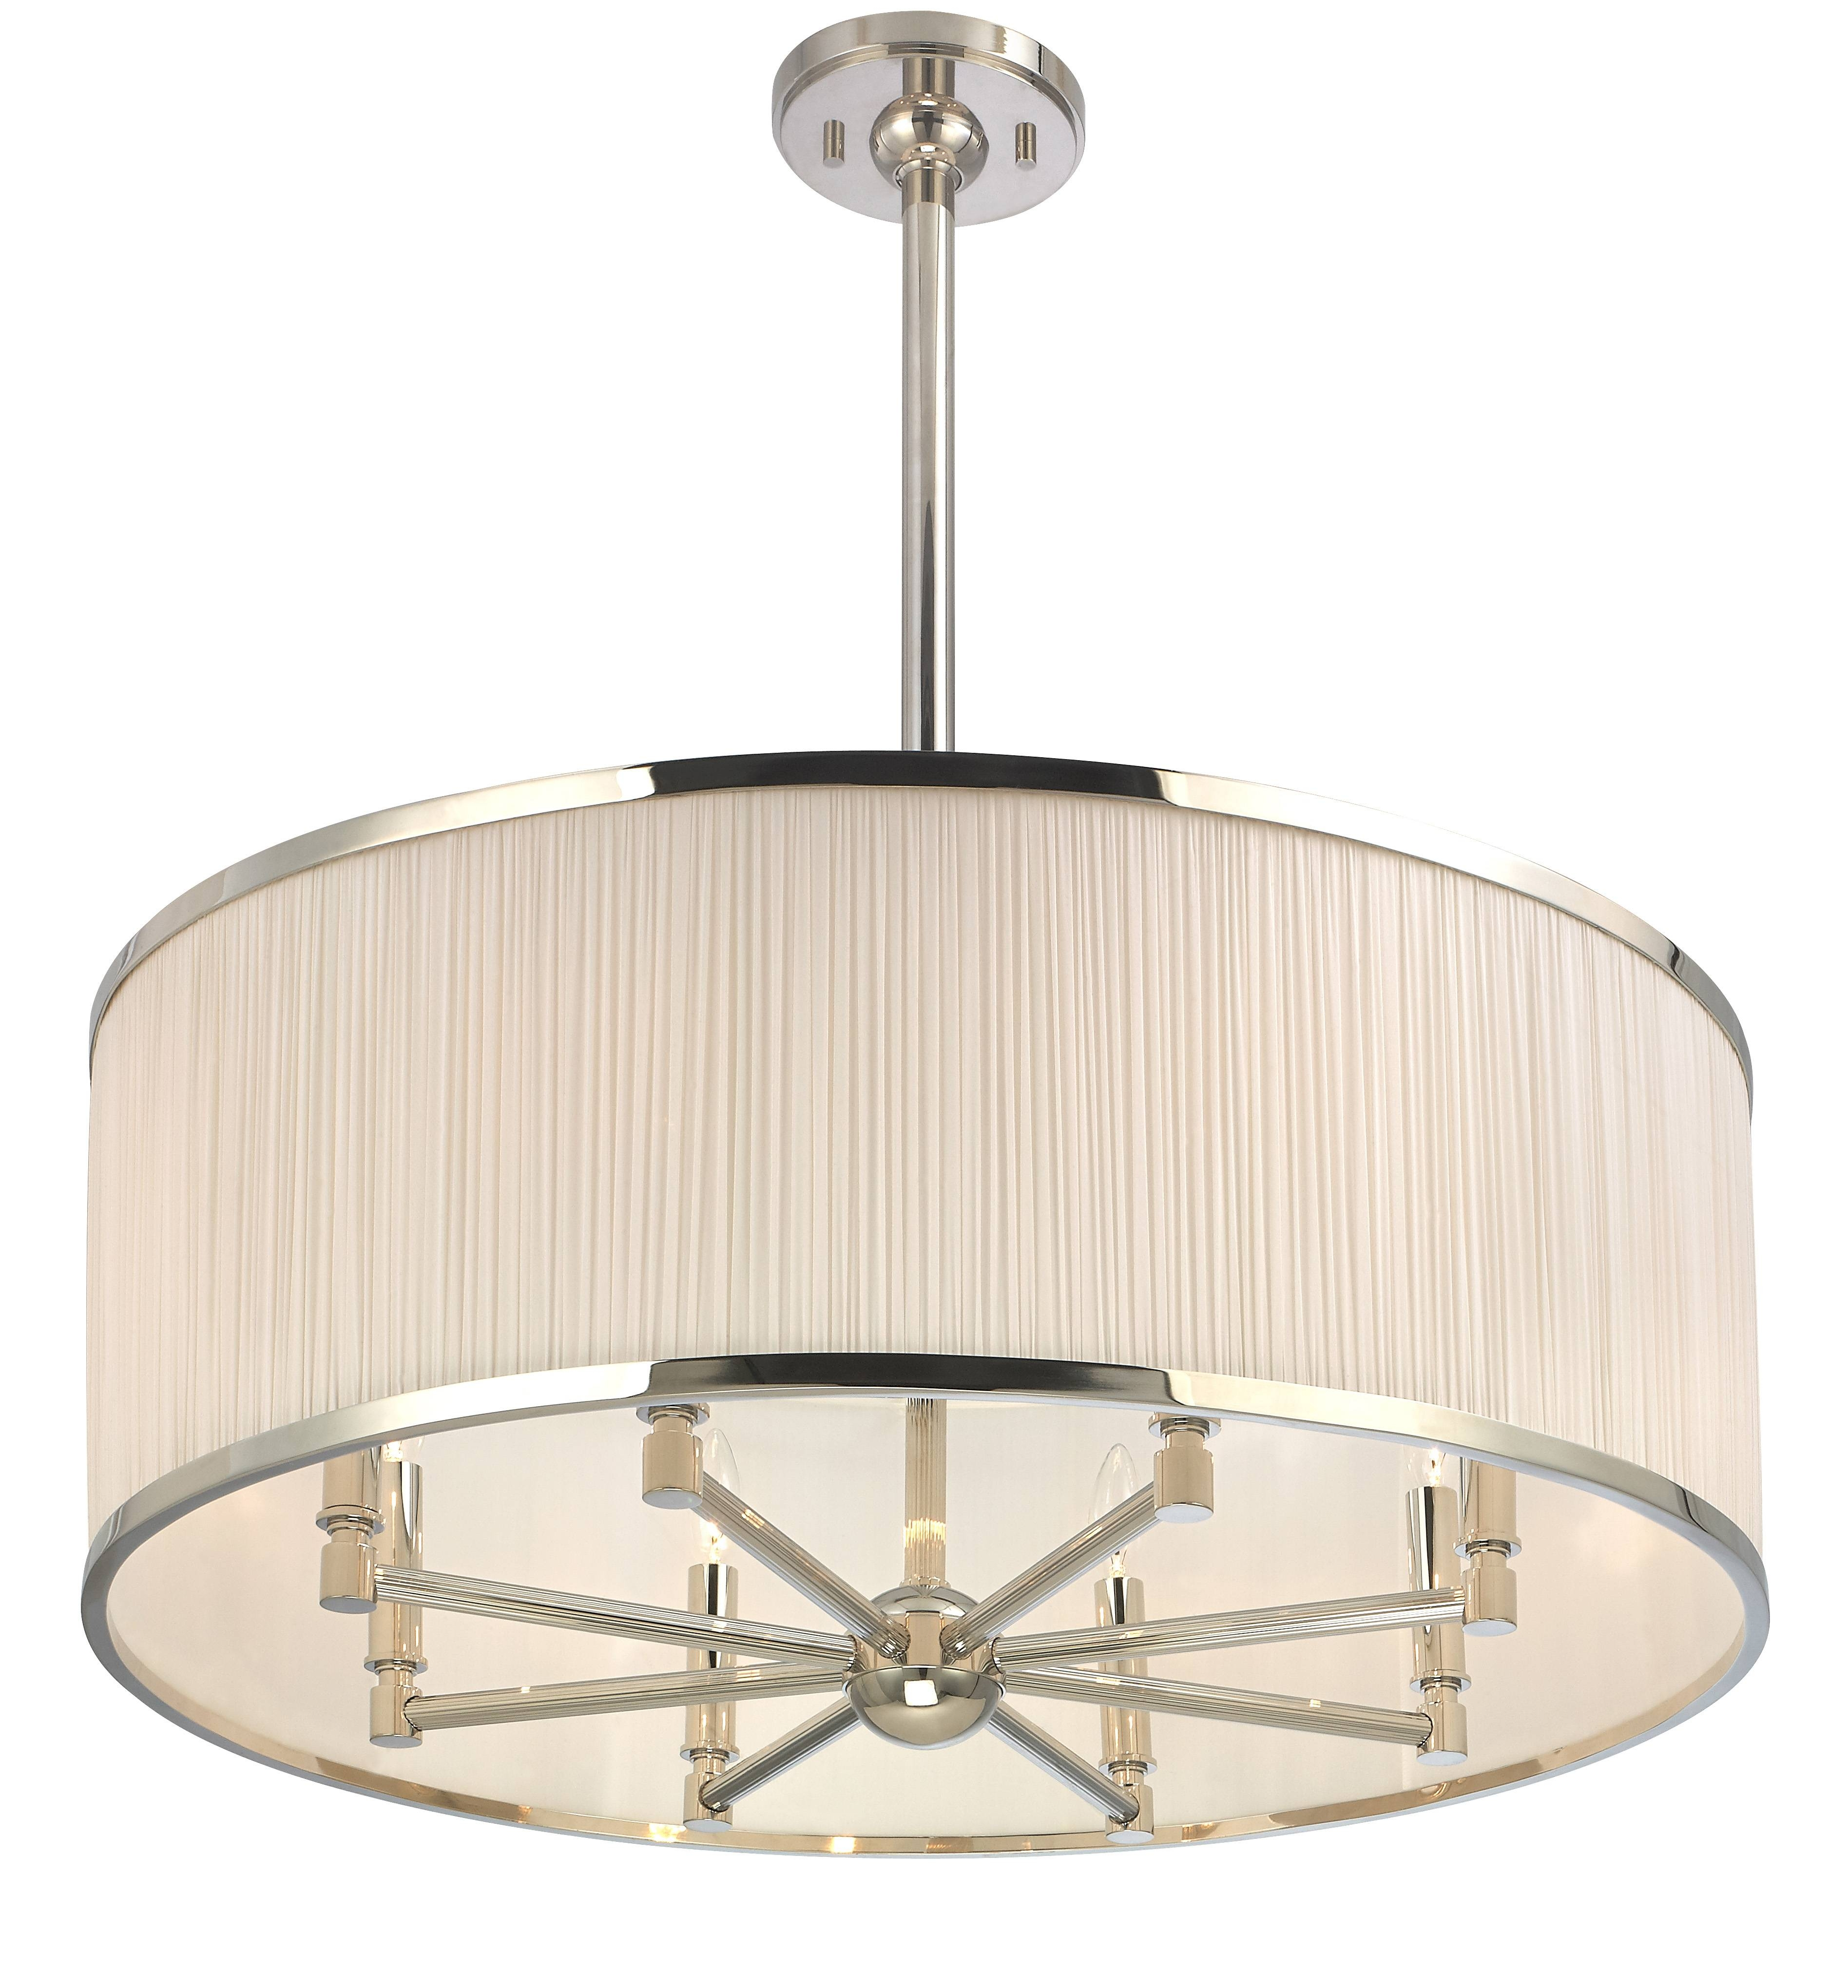 Awesome Drum Ceiling Light 89 On Screw In Pendant Light Fixtures Regarding Screw In Pendant Lights Fixtures (View 1 of 15)